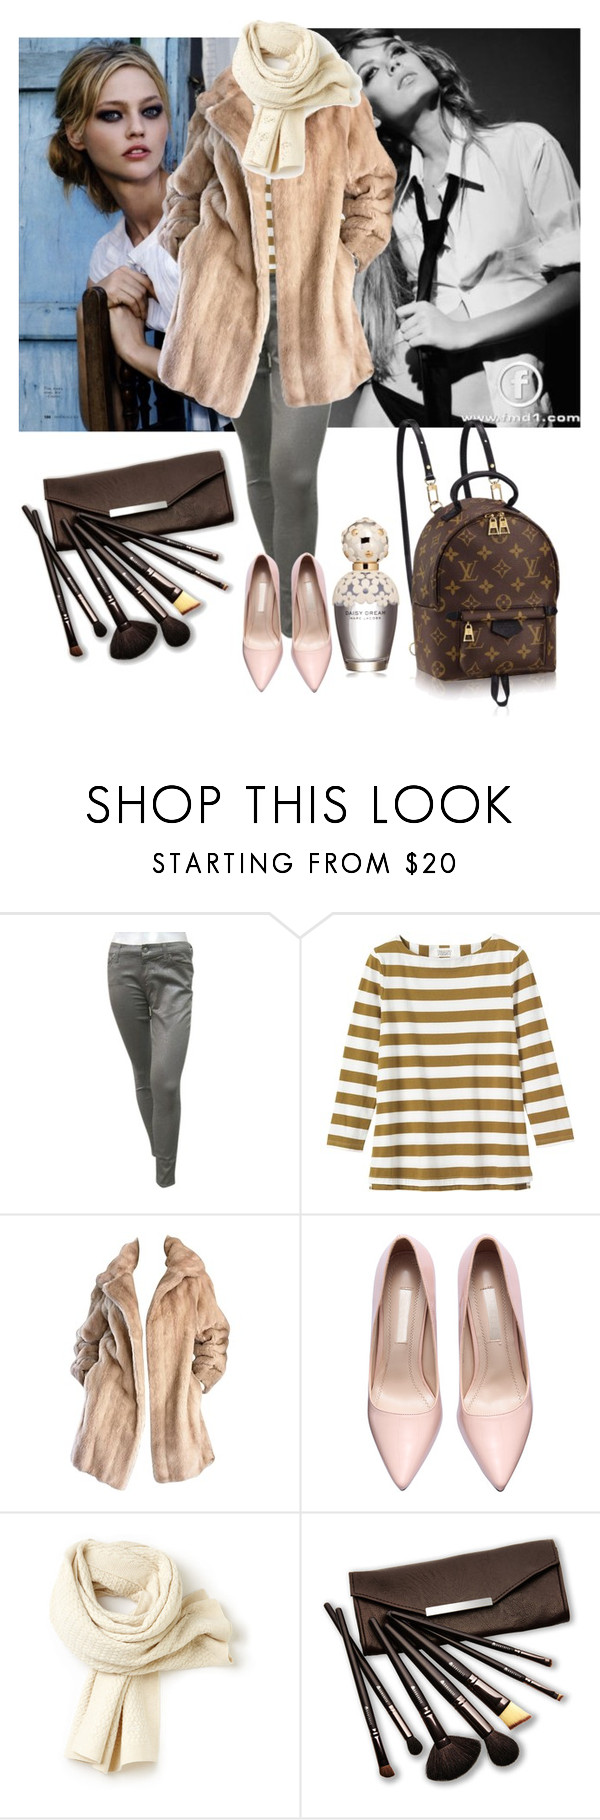 """13 Jan 2016"" by eiliana ❤ liked on Polyvore featuring moda, 7 For All Mankind, Toast, Louis Vuitton, Lacoste, Borghese y Marc Jacobs"